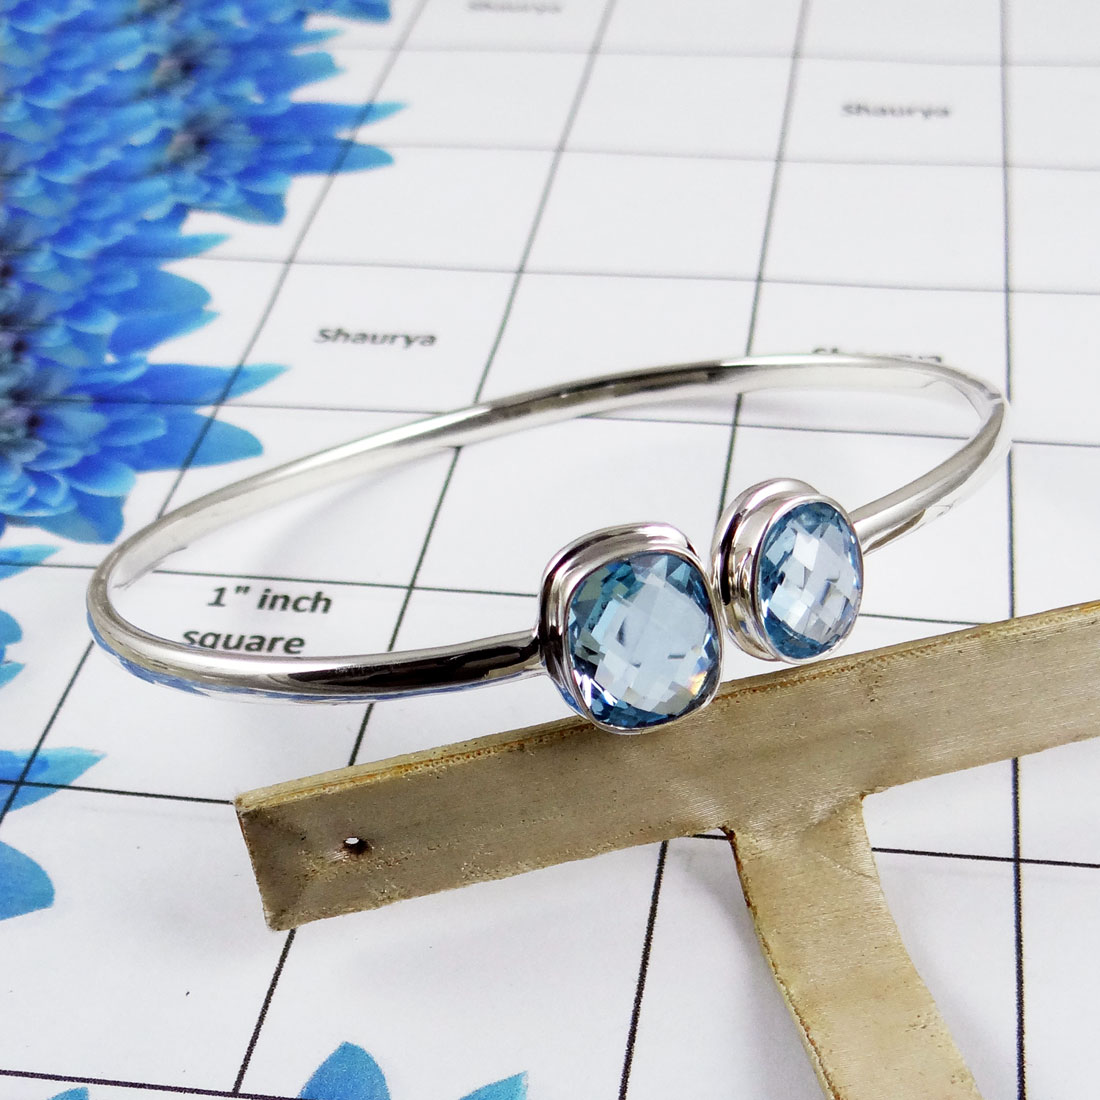 Blue Topaz Bangle - SNB978-Faceted Blue Topaz 925 Sterling Silver Two Stone Adjustable Bangle